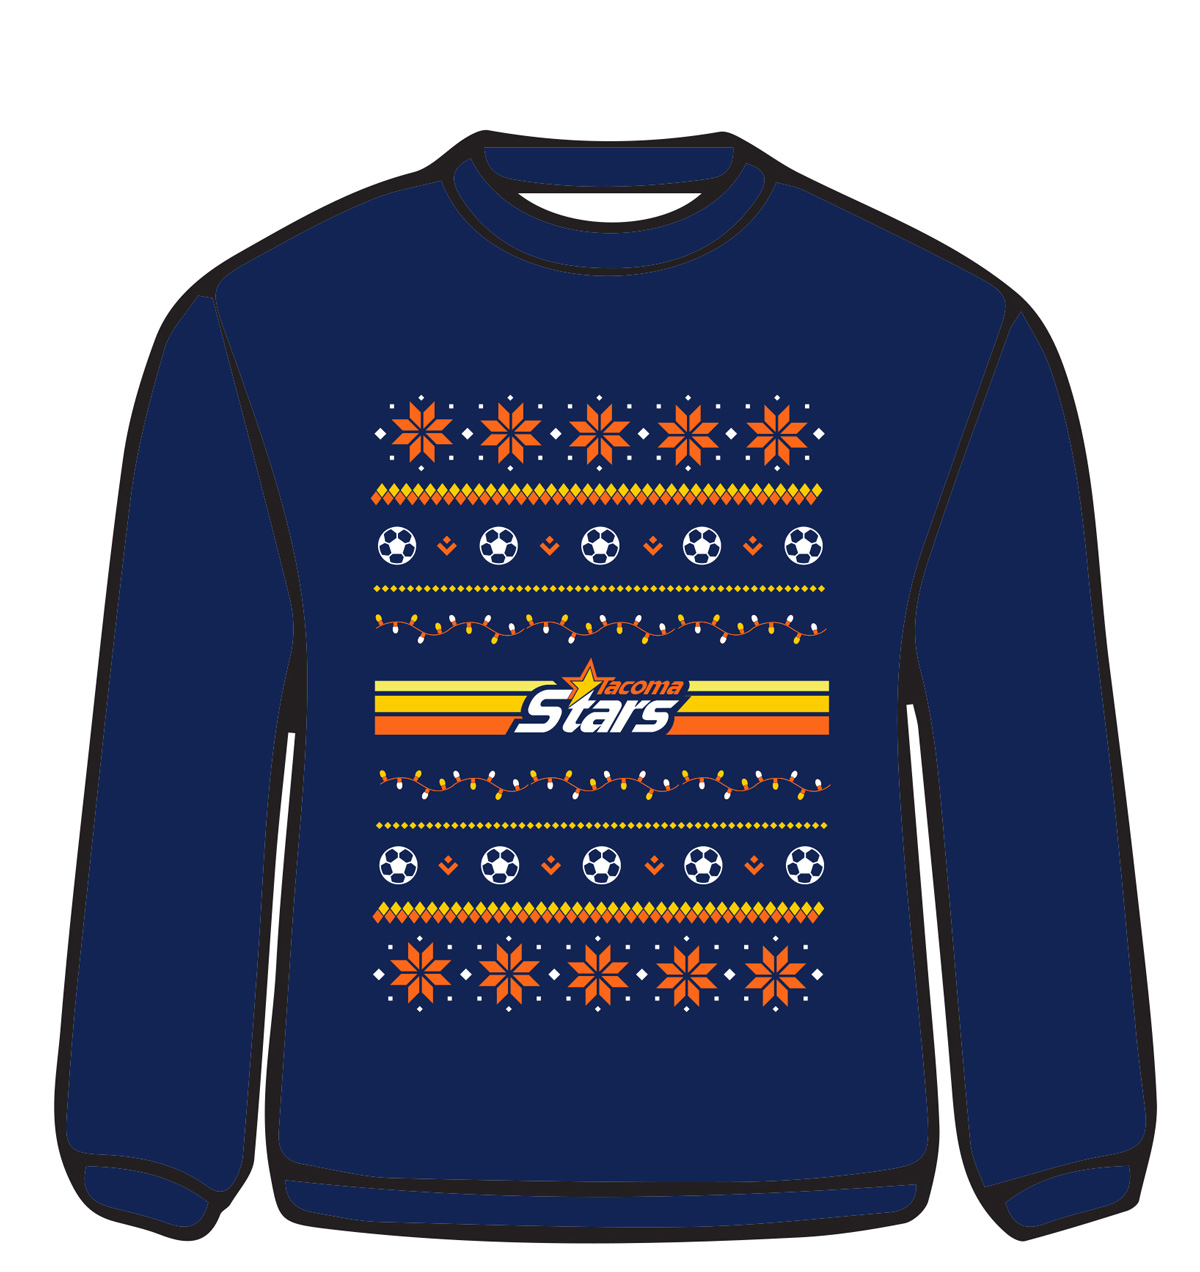 Tacoma-Stars-Sweater